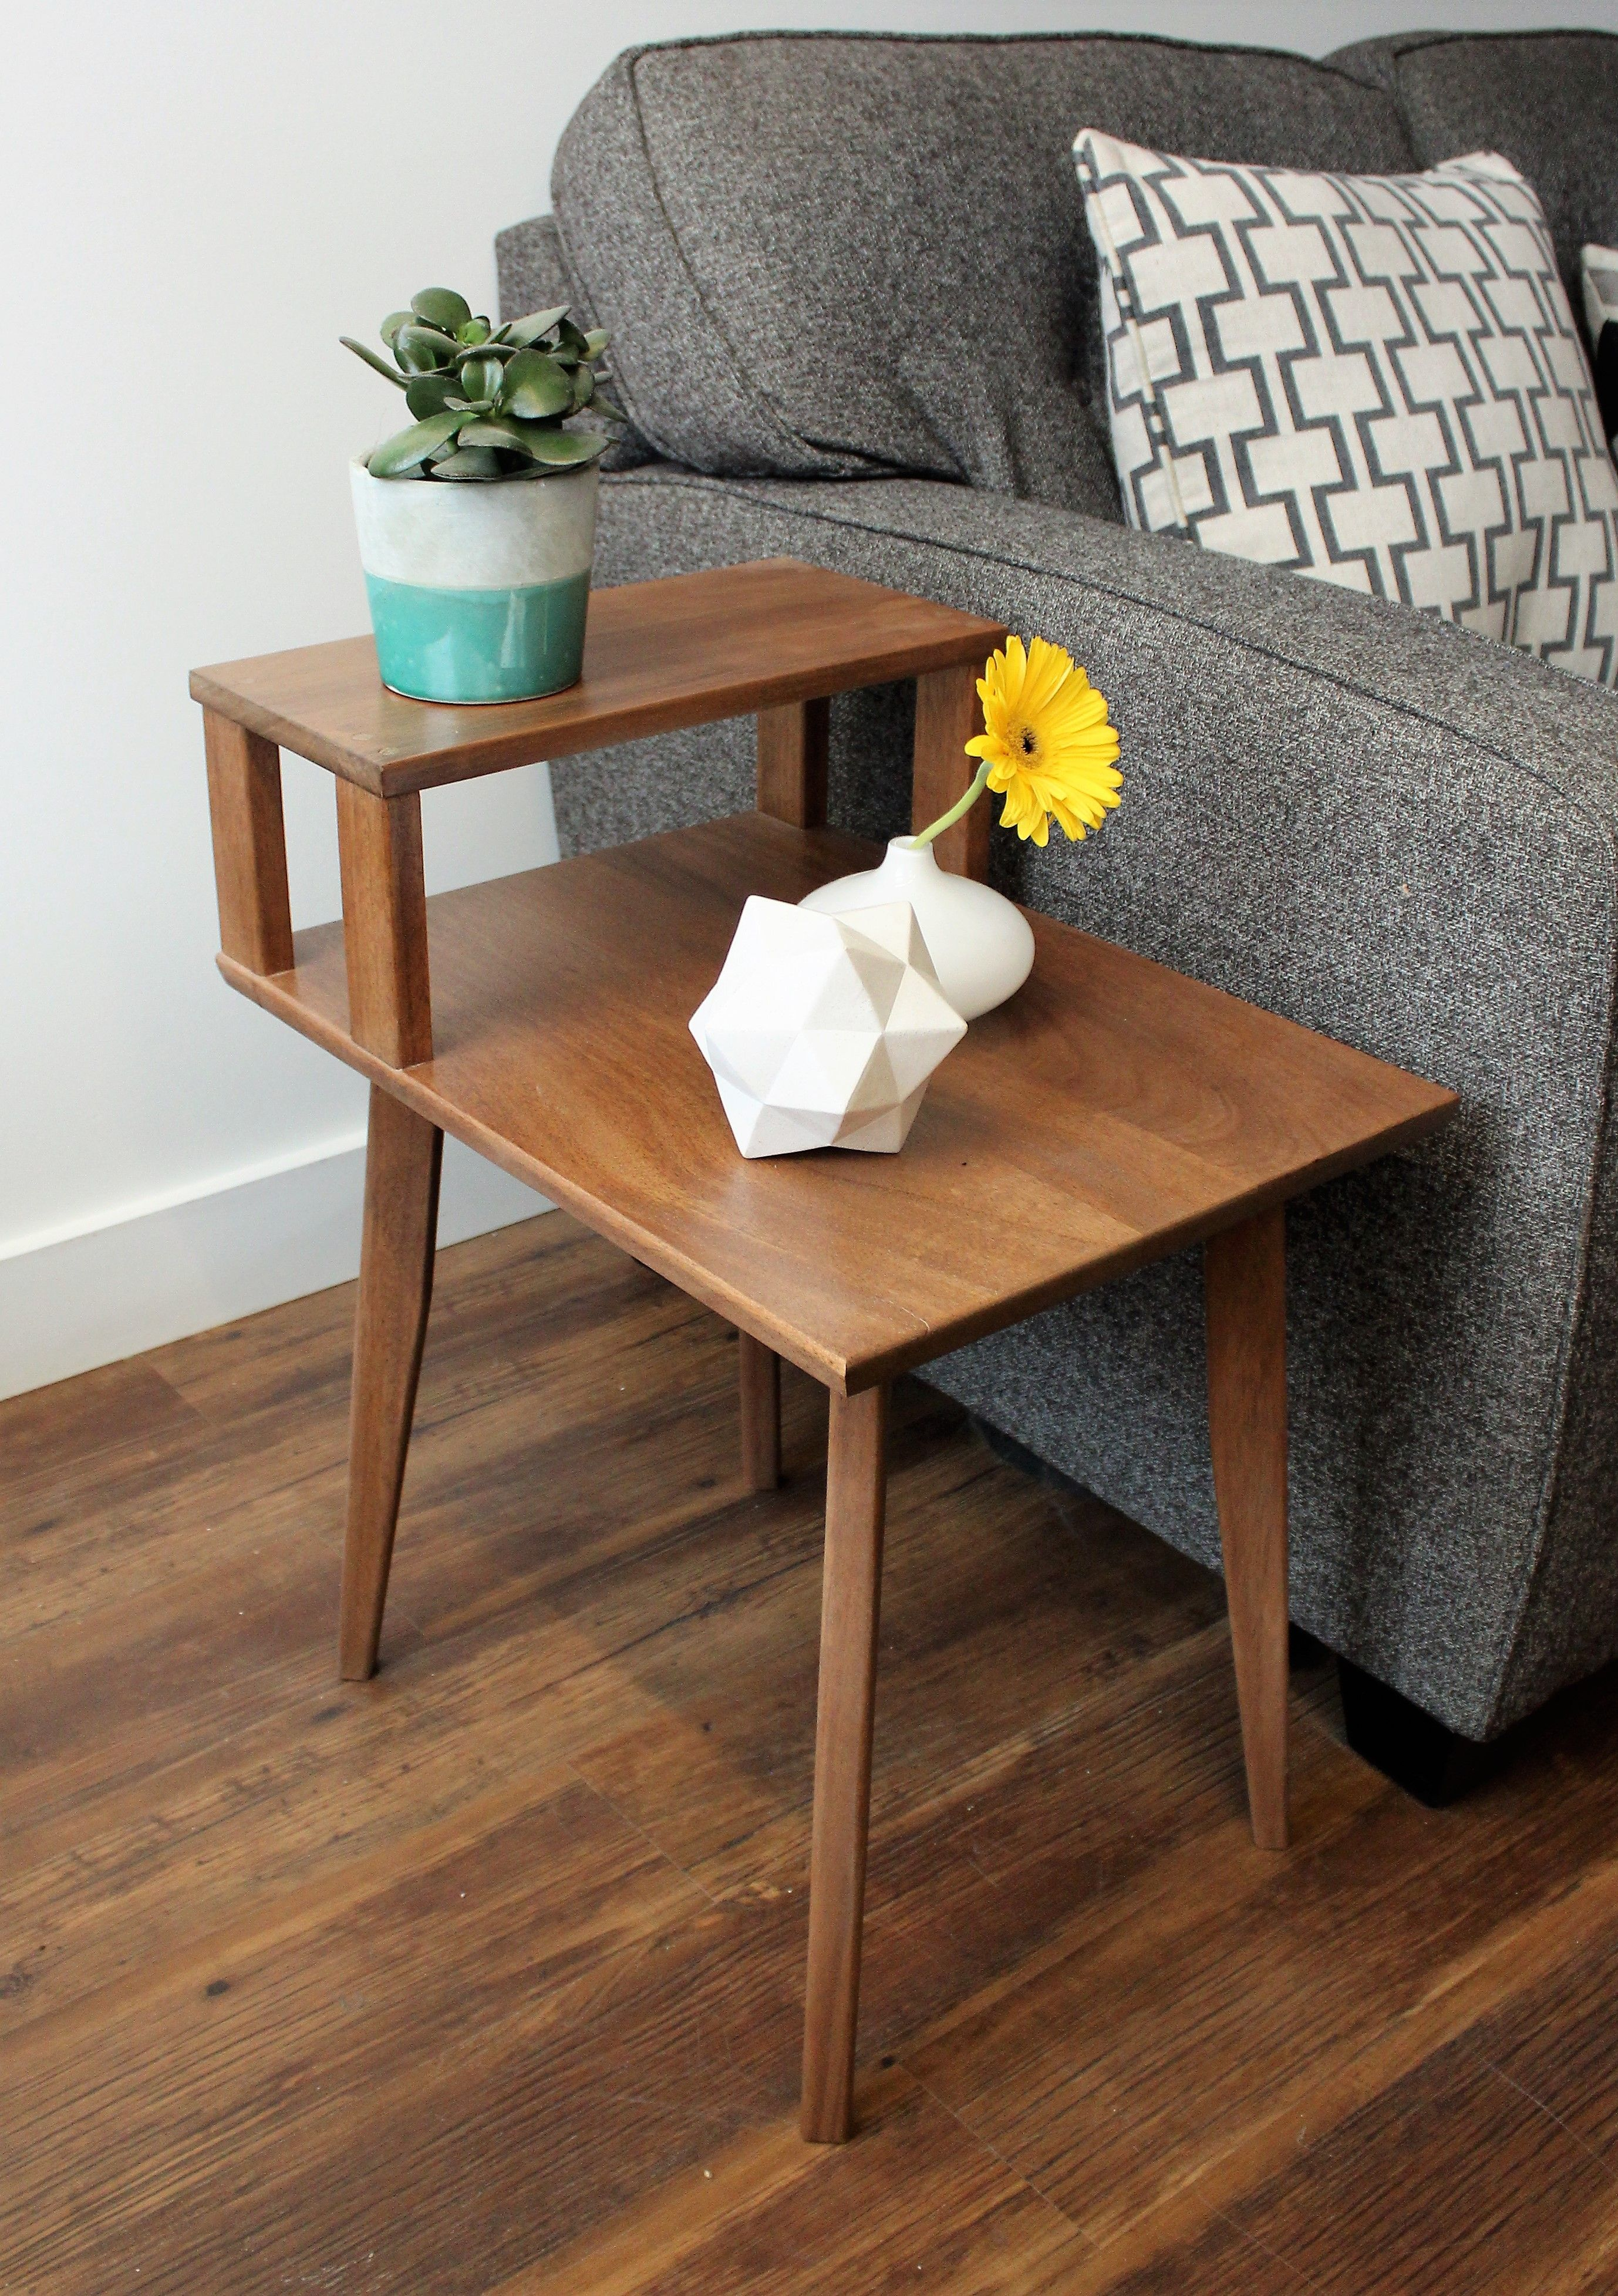 Elwood S Mid Century Modern Telephone Side Table Modern Side Table Mid Century Modern Side Table Small End Tables [ 3911 x 2756 Pixel ]